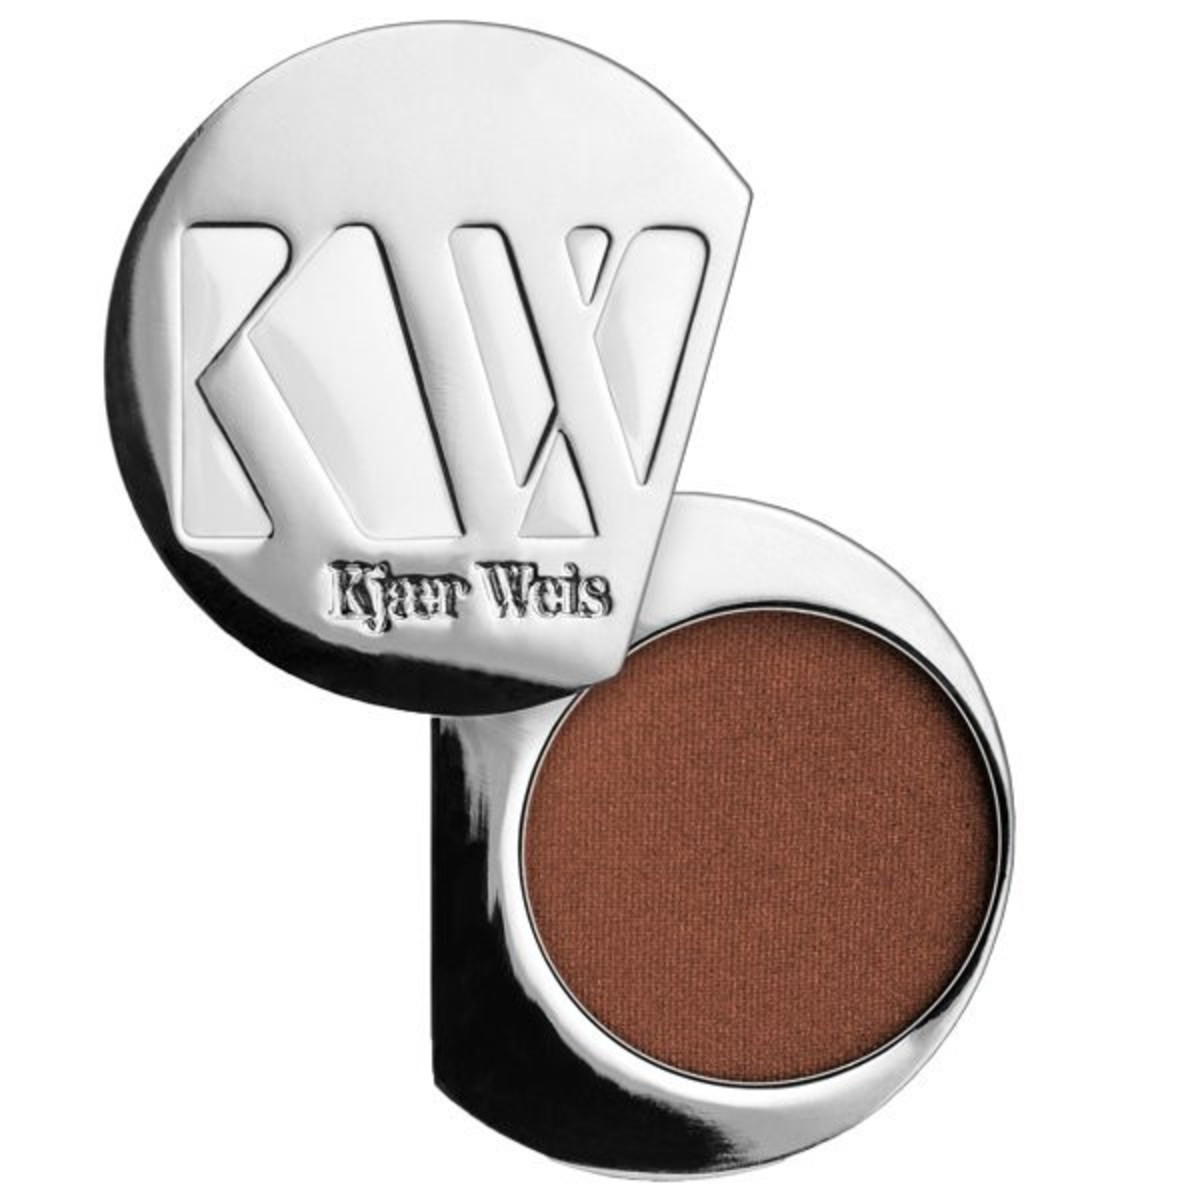 Kjaer Weis Eye Shadow in Transcend